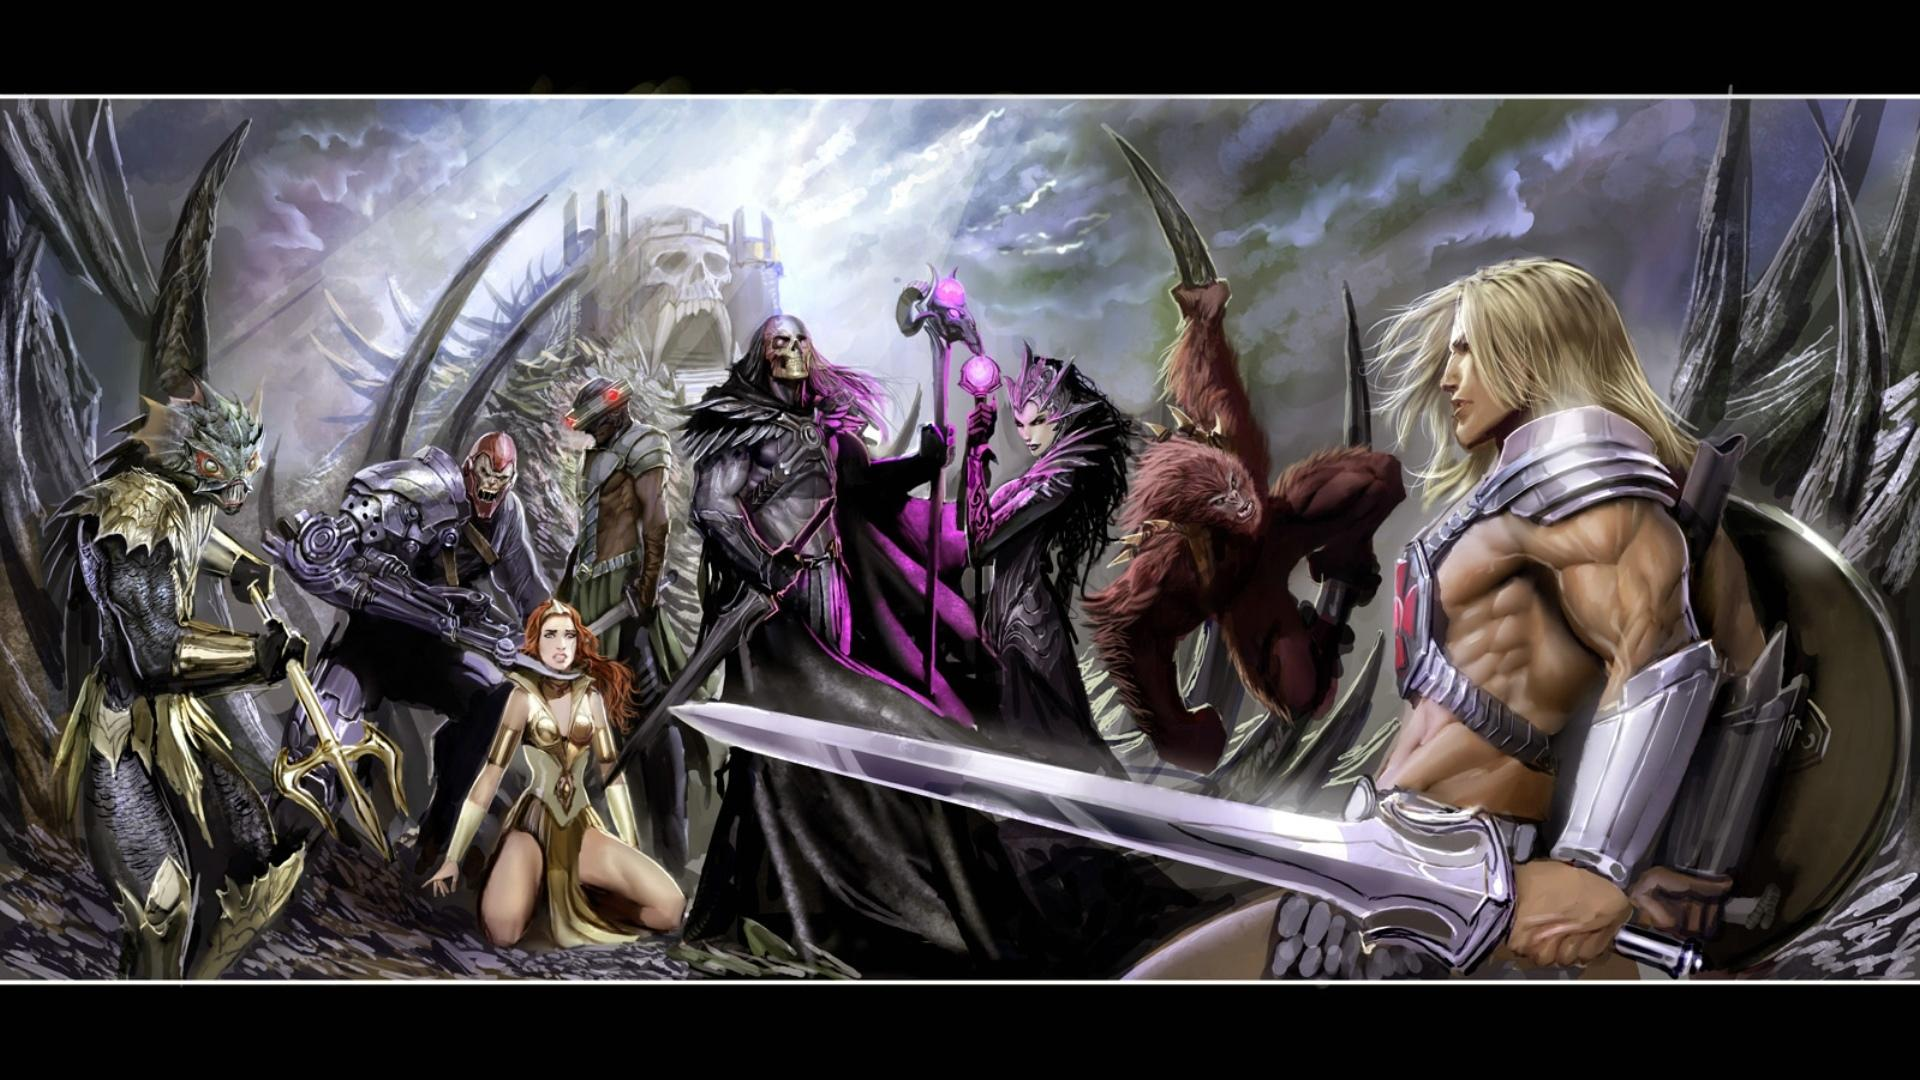 He-man And The Masters Of The Universe wallpapers HD quality